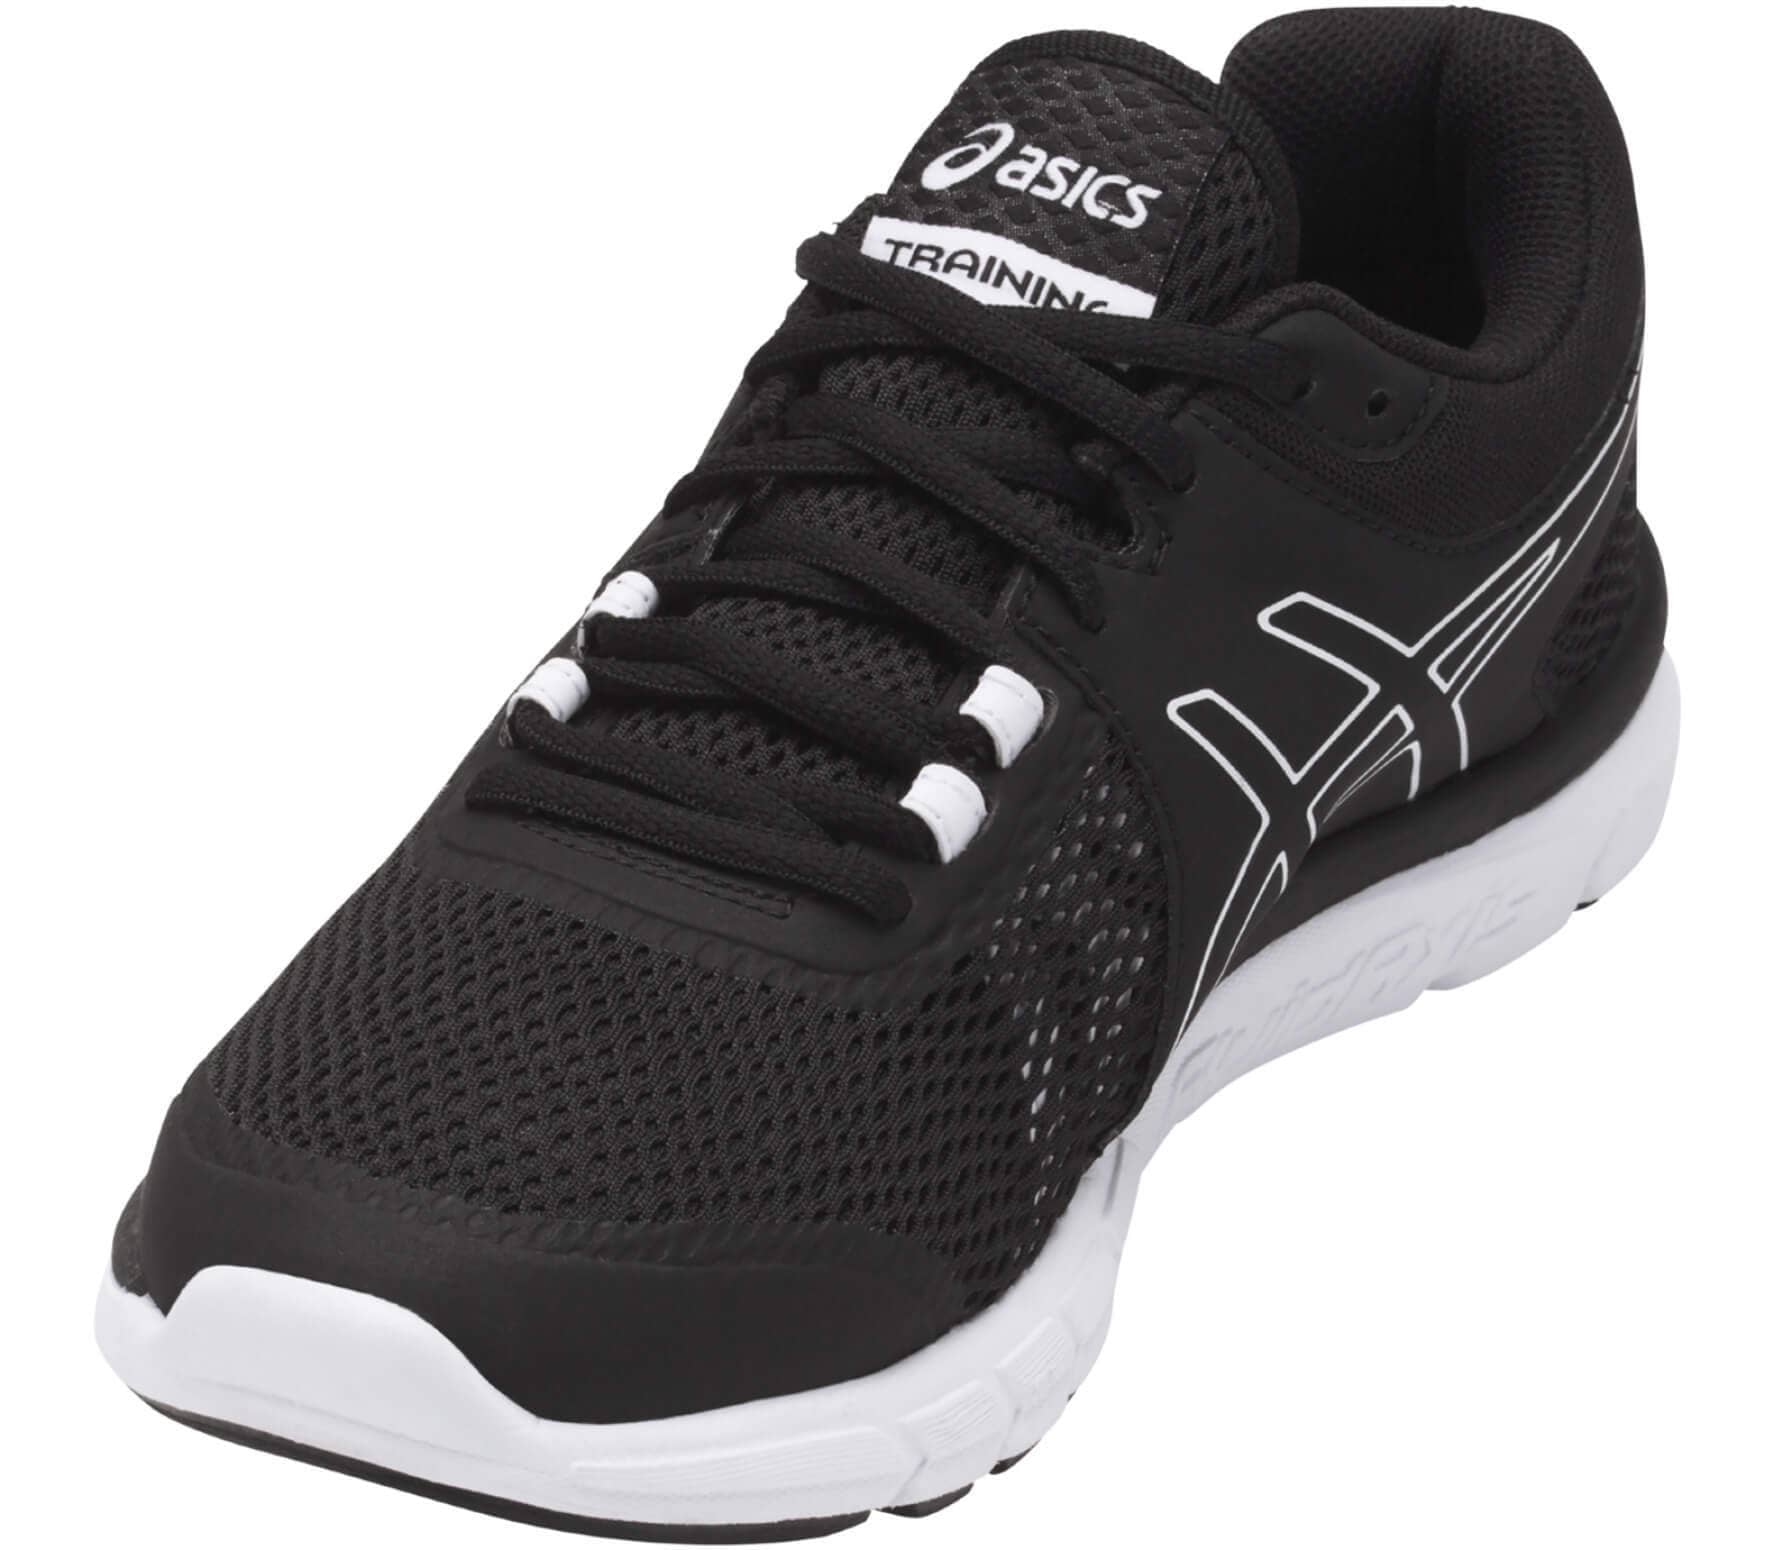 e69c50ca83cb Asics - Gel-Craze TR 4 women s training shoes (black white) - buy it ...